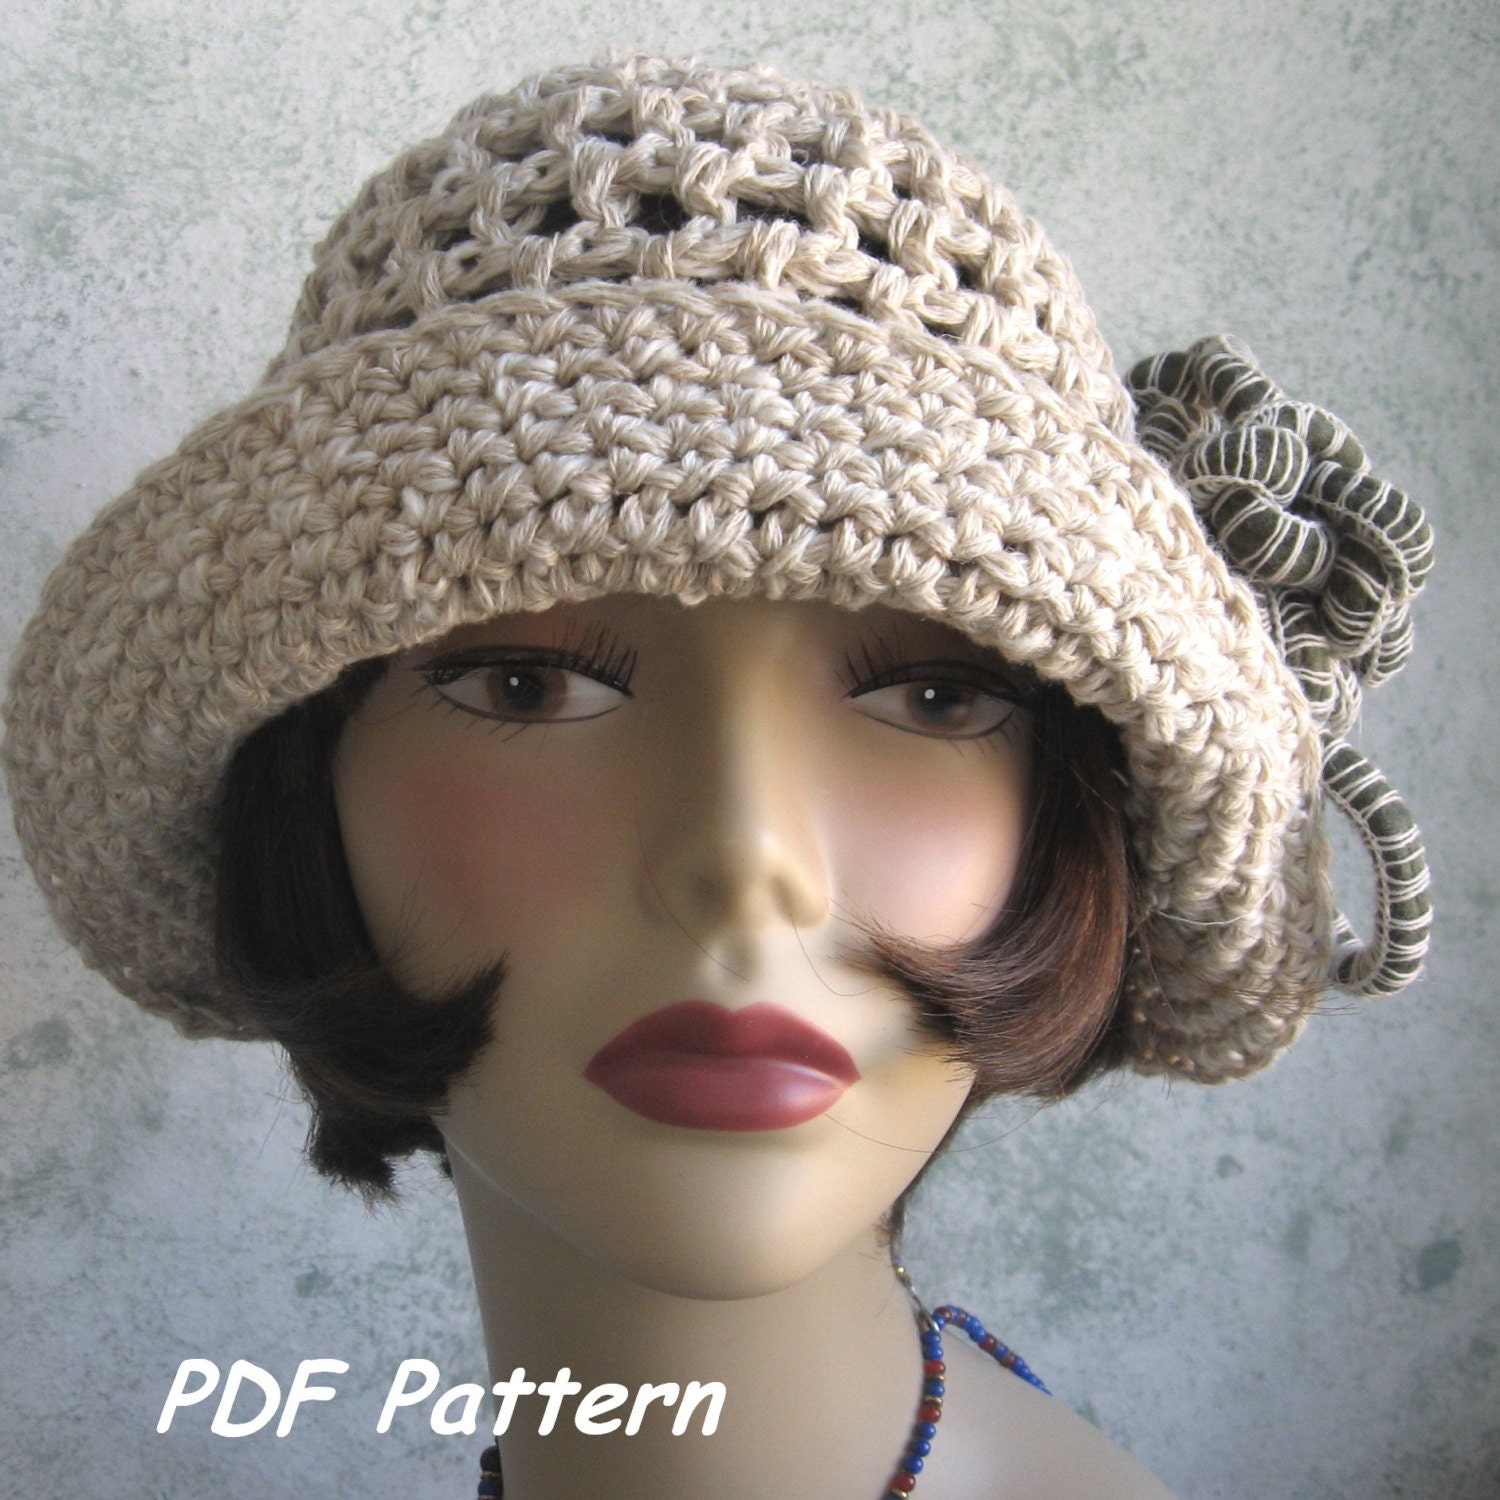 Brimmed Crochet Hat Pattern Cloche With Flower Trim PDF